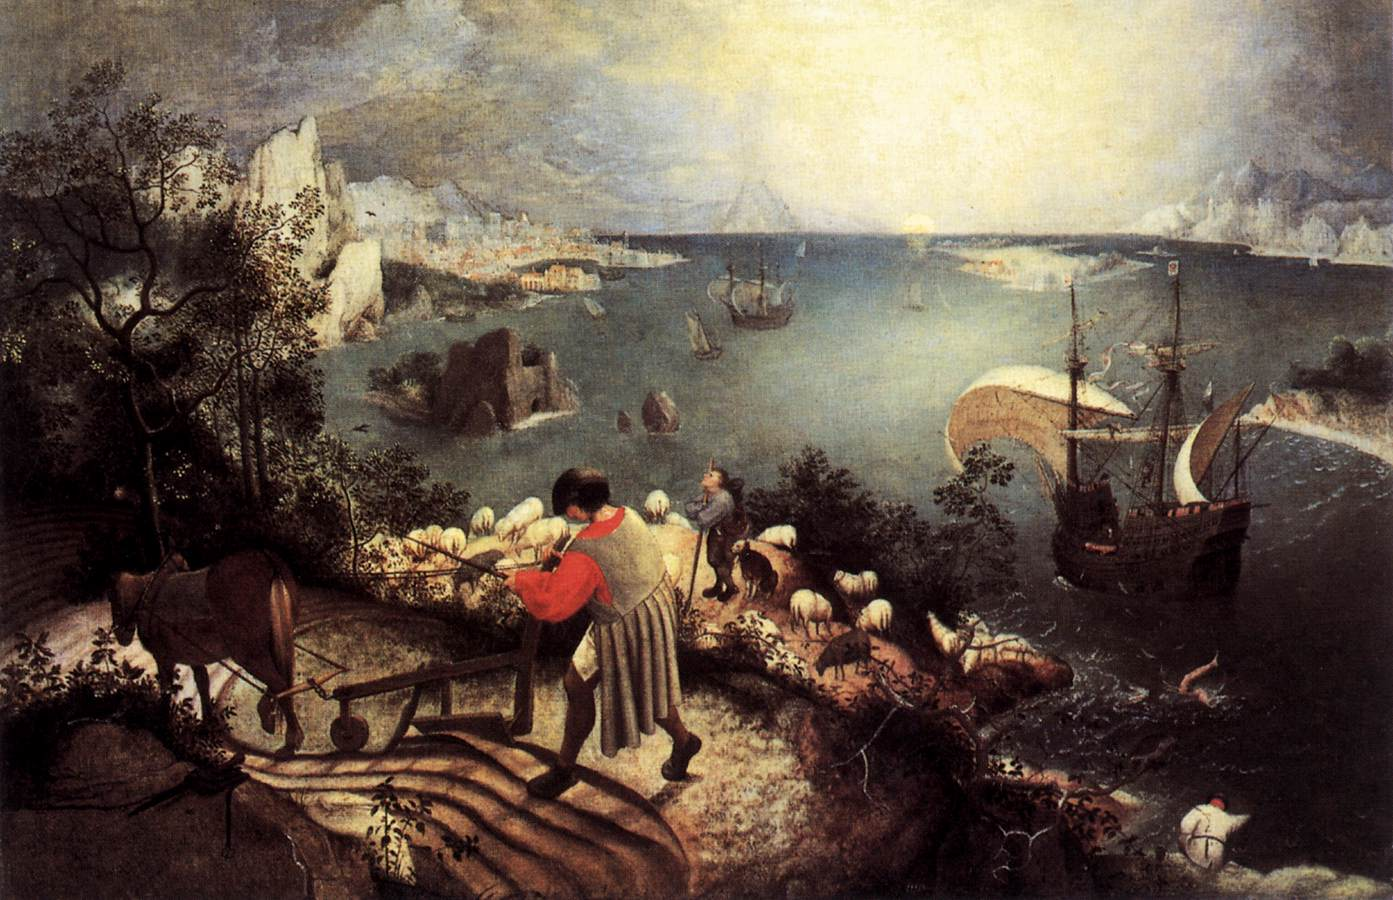 http://upload.wikimedia.org/wikipedia/commons/0/03/Pieter_Bruegel_the_Elder_-_Landscape_with_the_Fall_of_Icarus_-_WGA03322.jpg